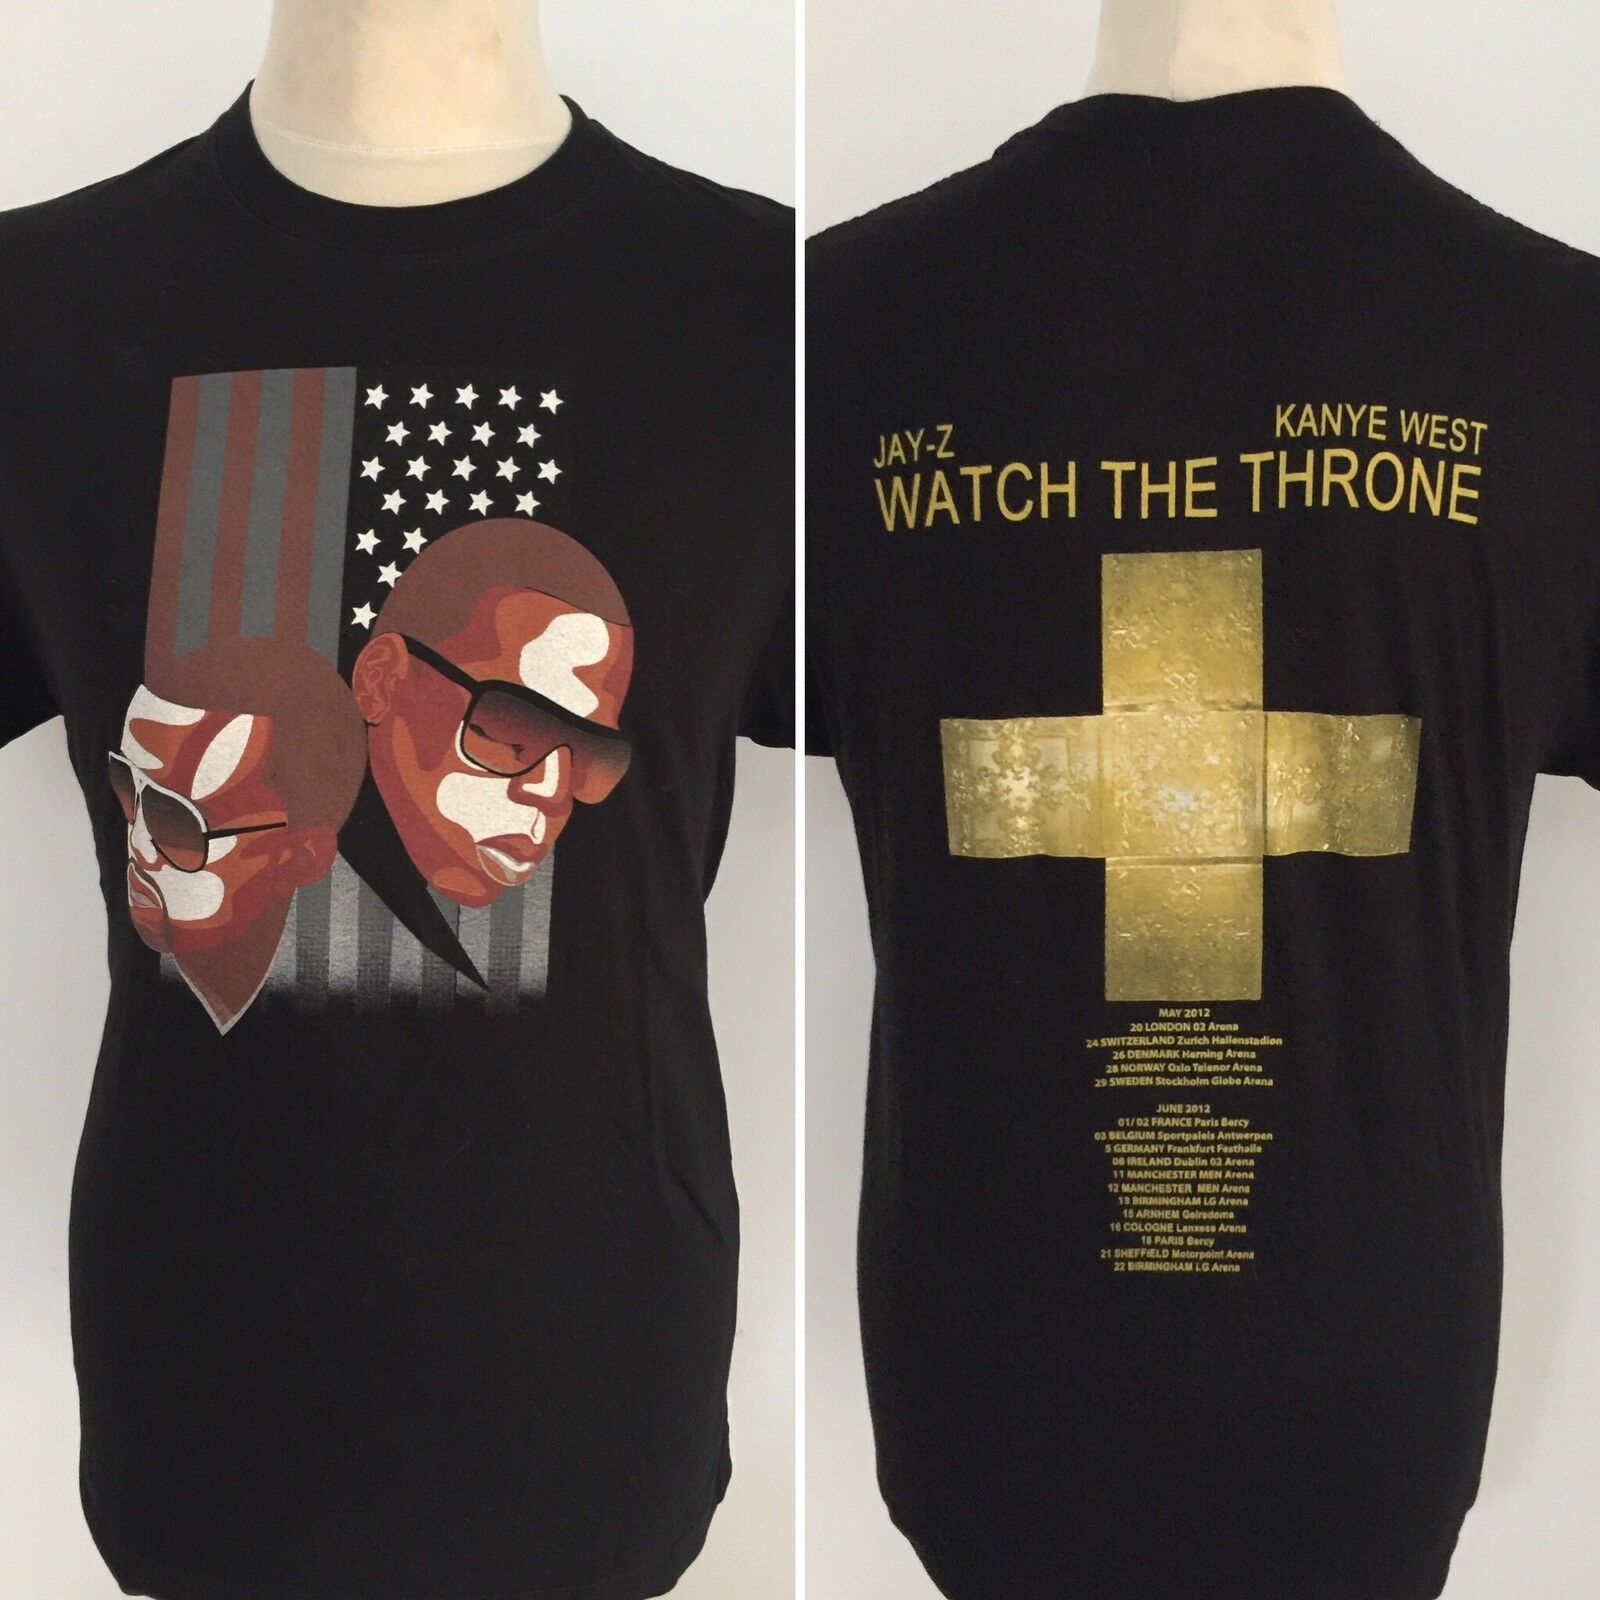 JAY Z KANYE WEST Watch The Throne 2012 European Tour T Shirt Size Medium 2019 New Fashion Men'S Top Tee image